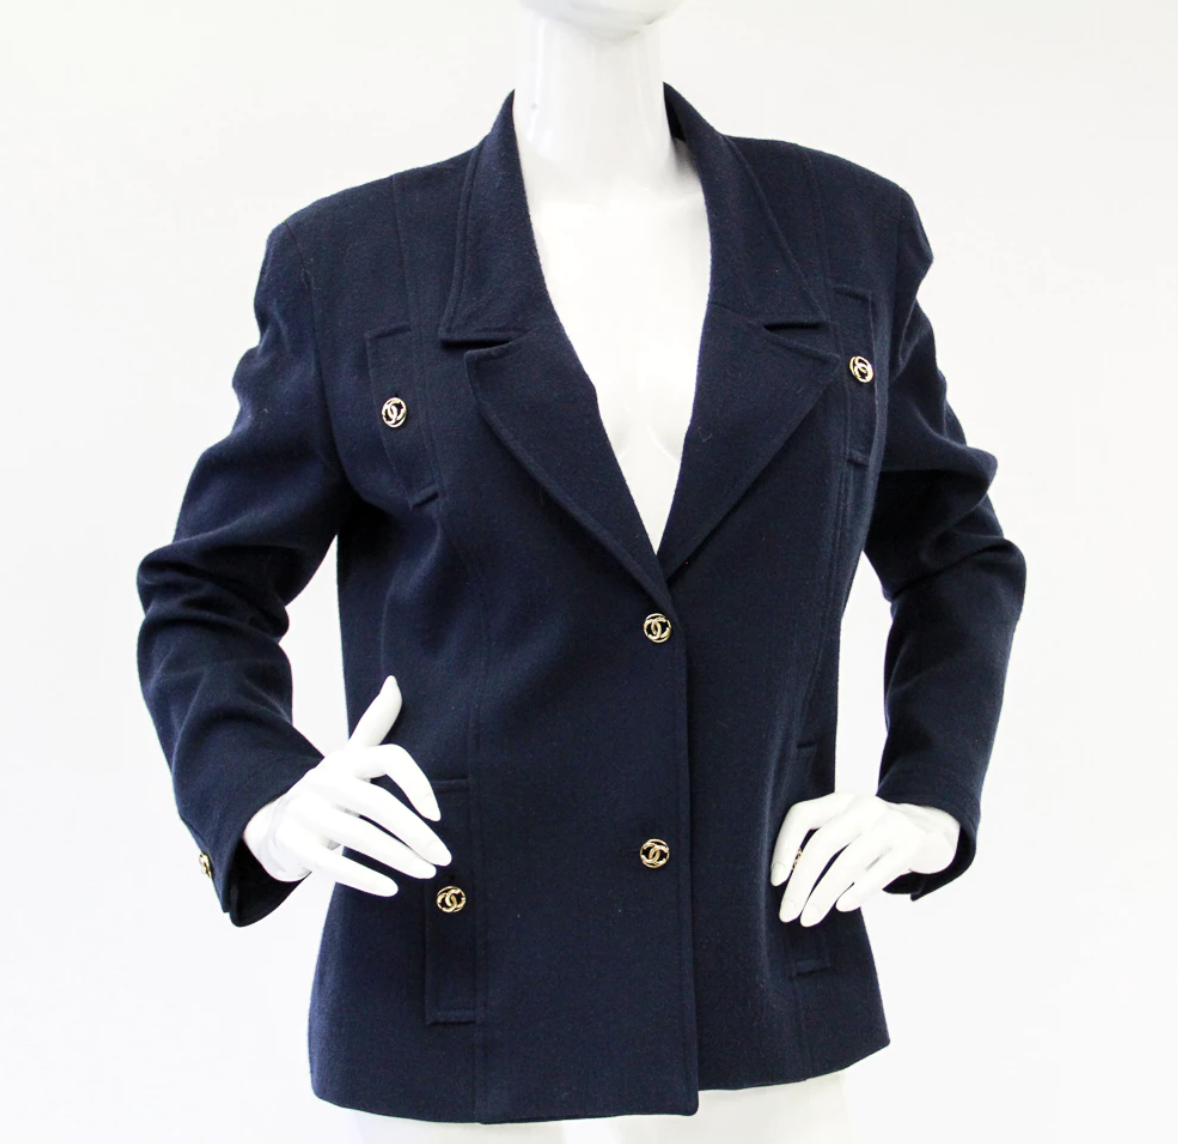 Vintage 1980's Chanel Blazer. Current Bid Price $113.